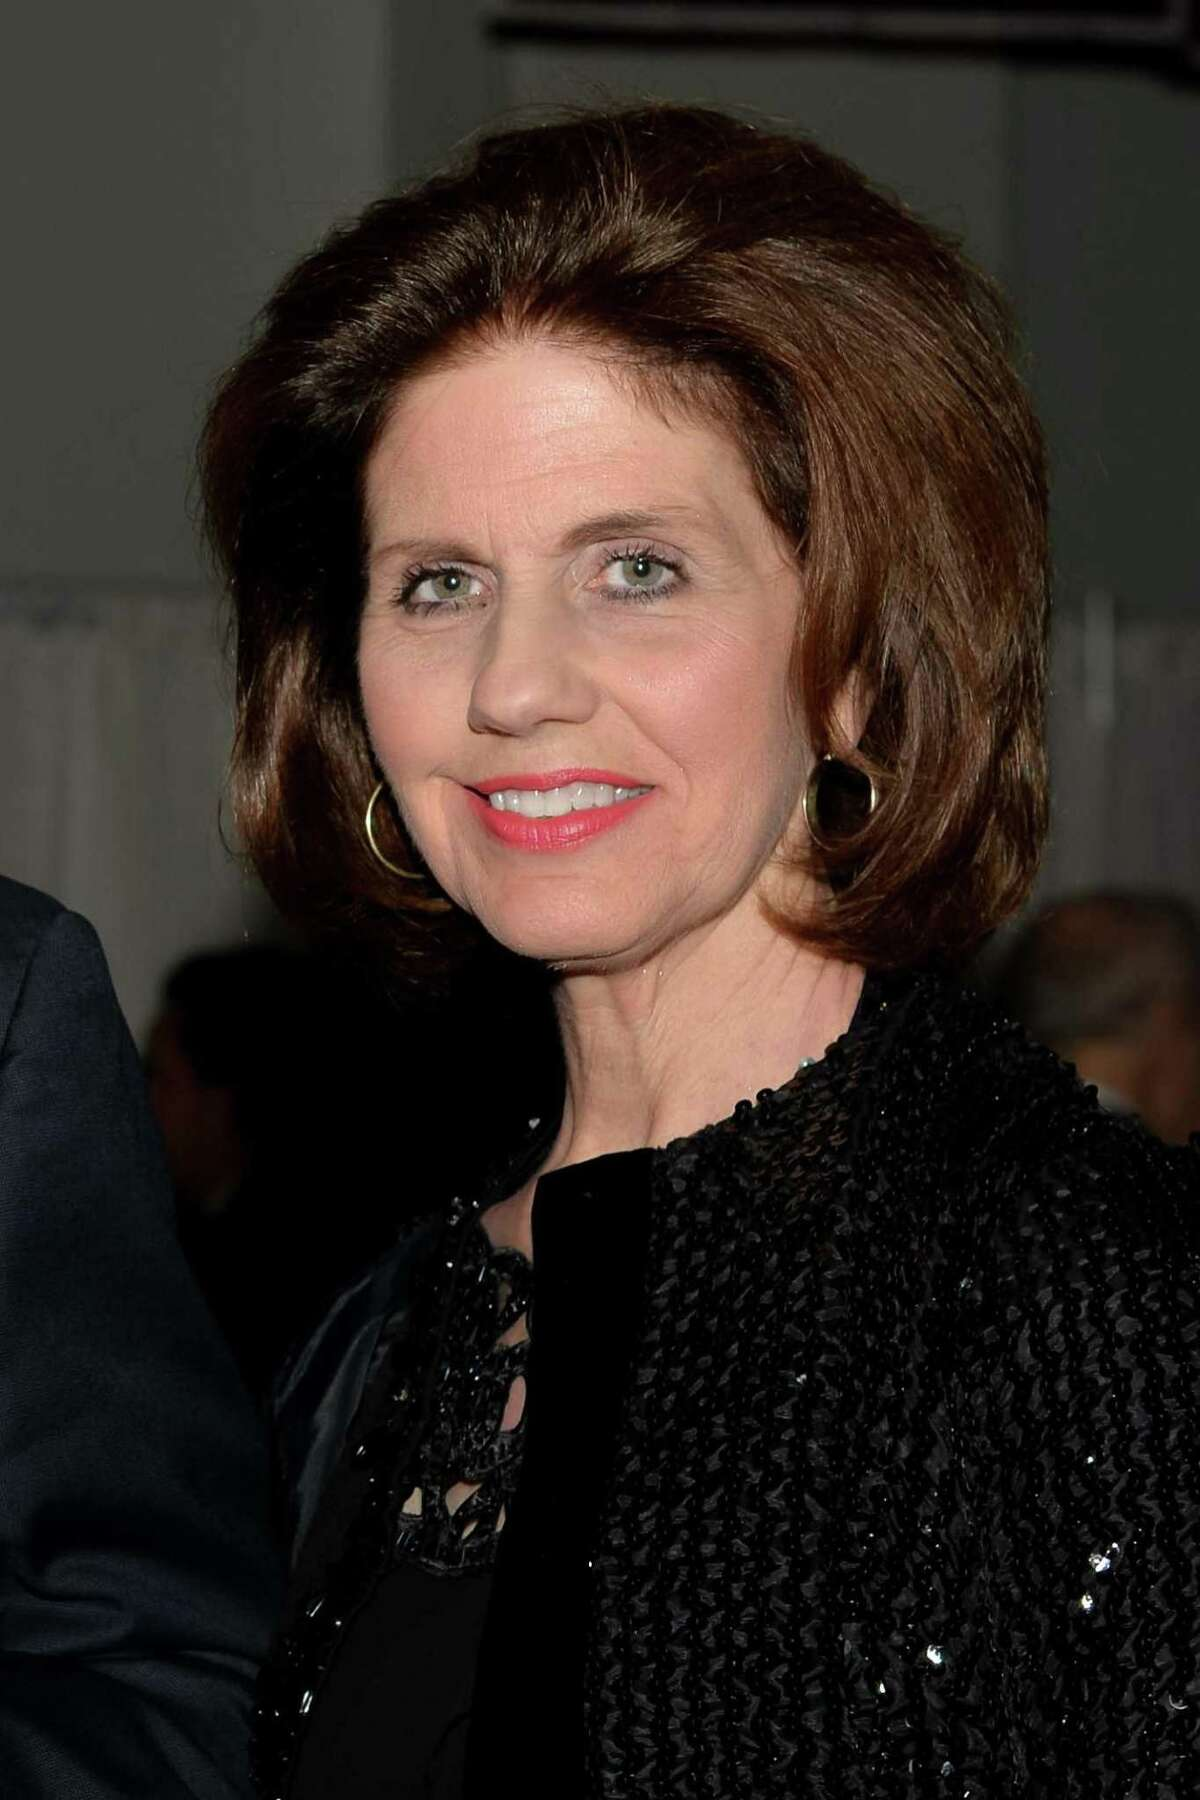 Charlotte Han Sharp, died Tuesday at 67. Friends say she was a woman of faith.